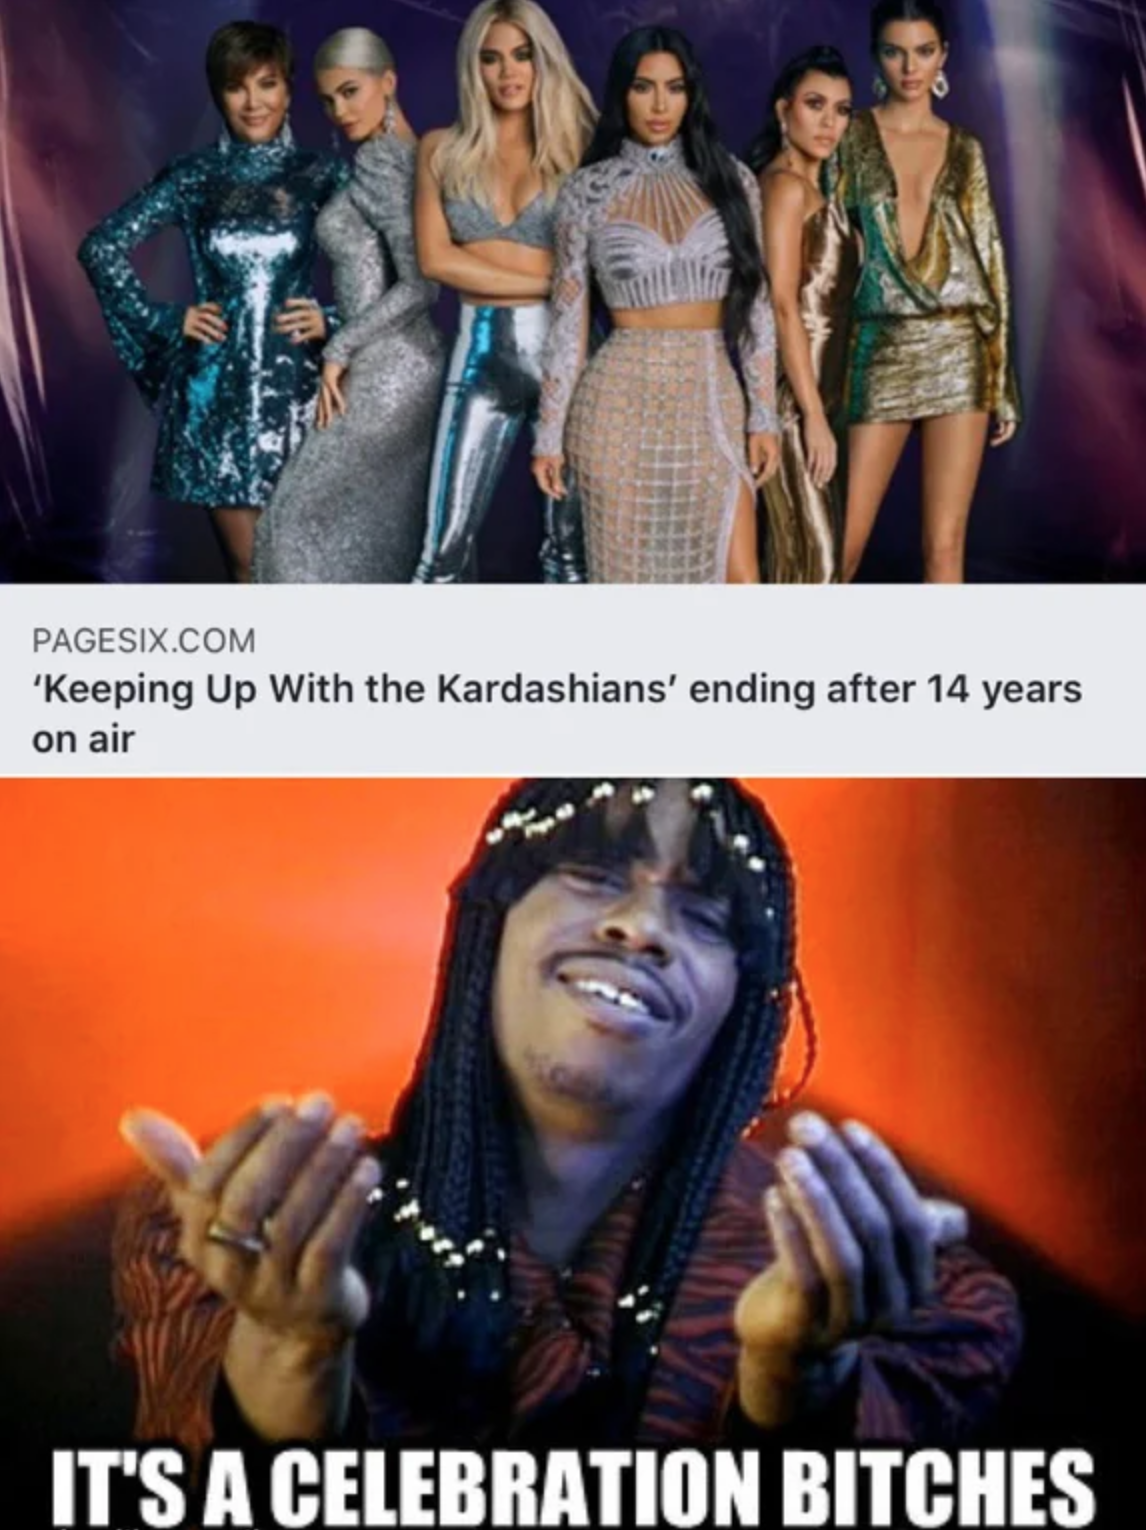 Keeping Up With The Kardashians ending after 14 years -  its a celebration bitches